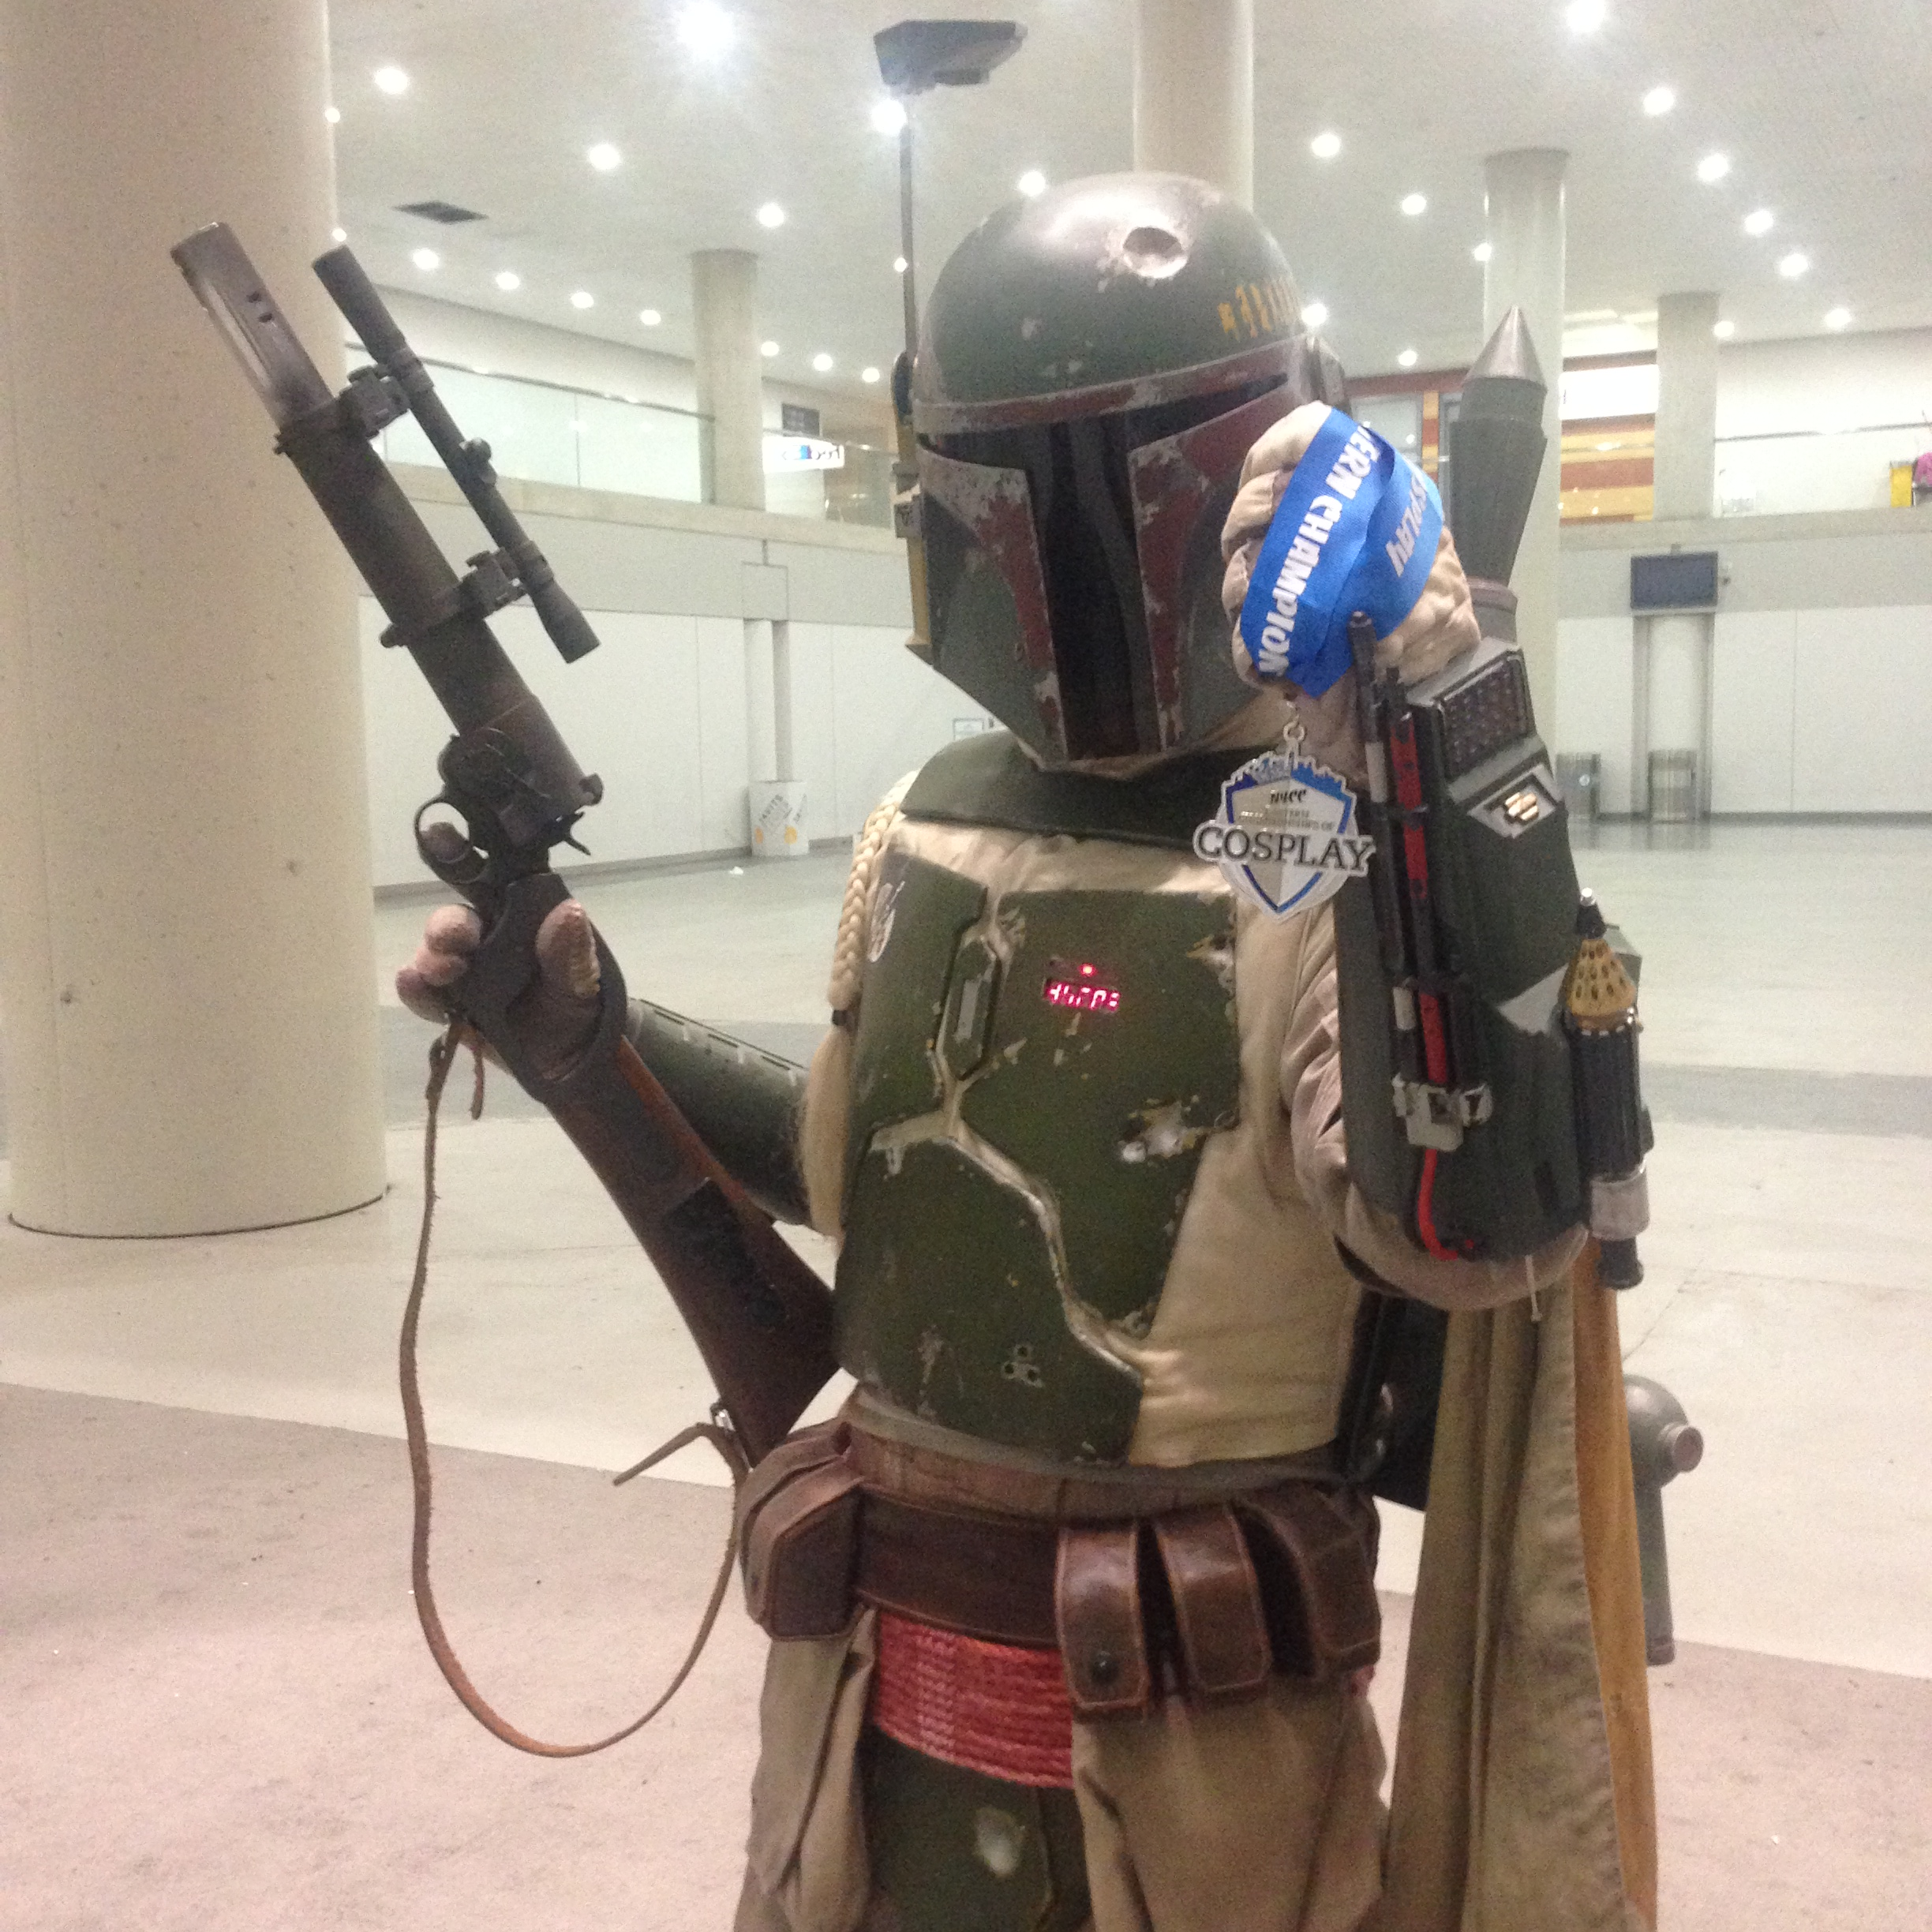 JC Fett (Fan Spotlight 12/22/2014)